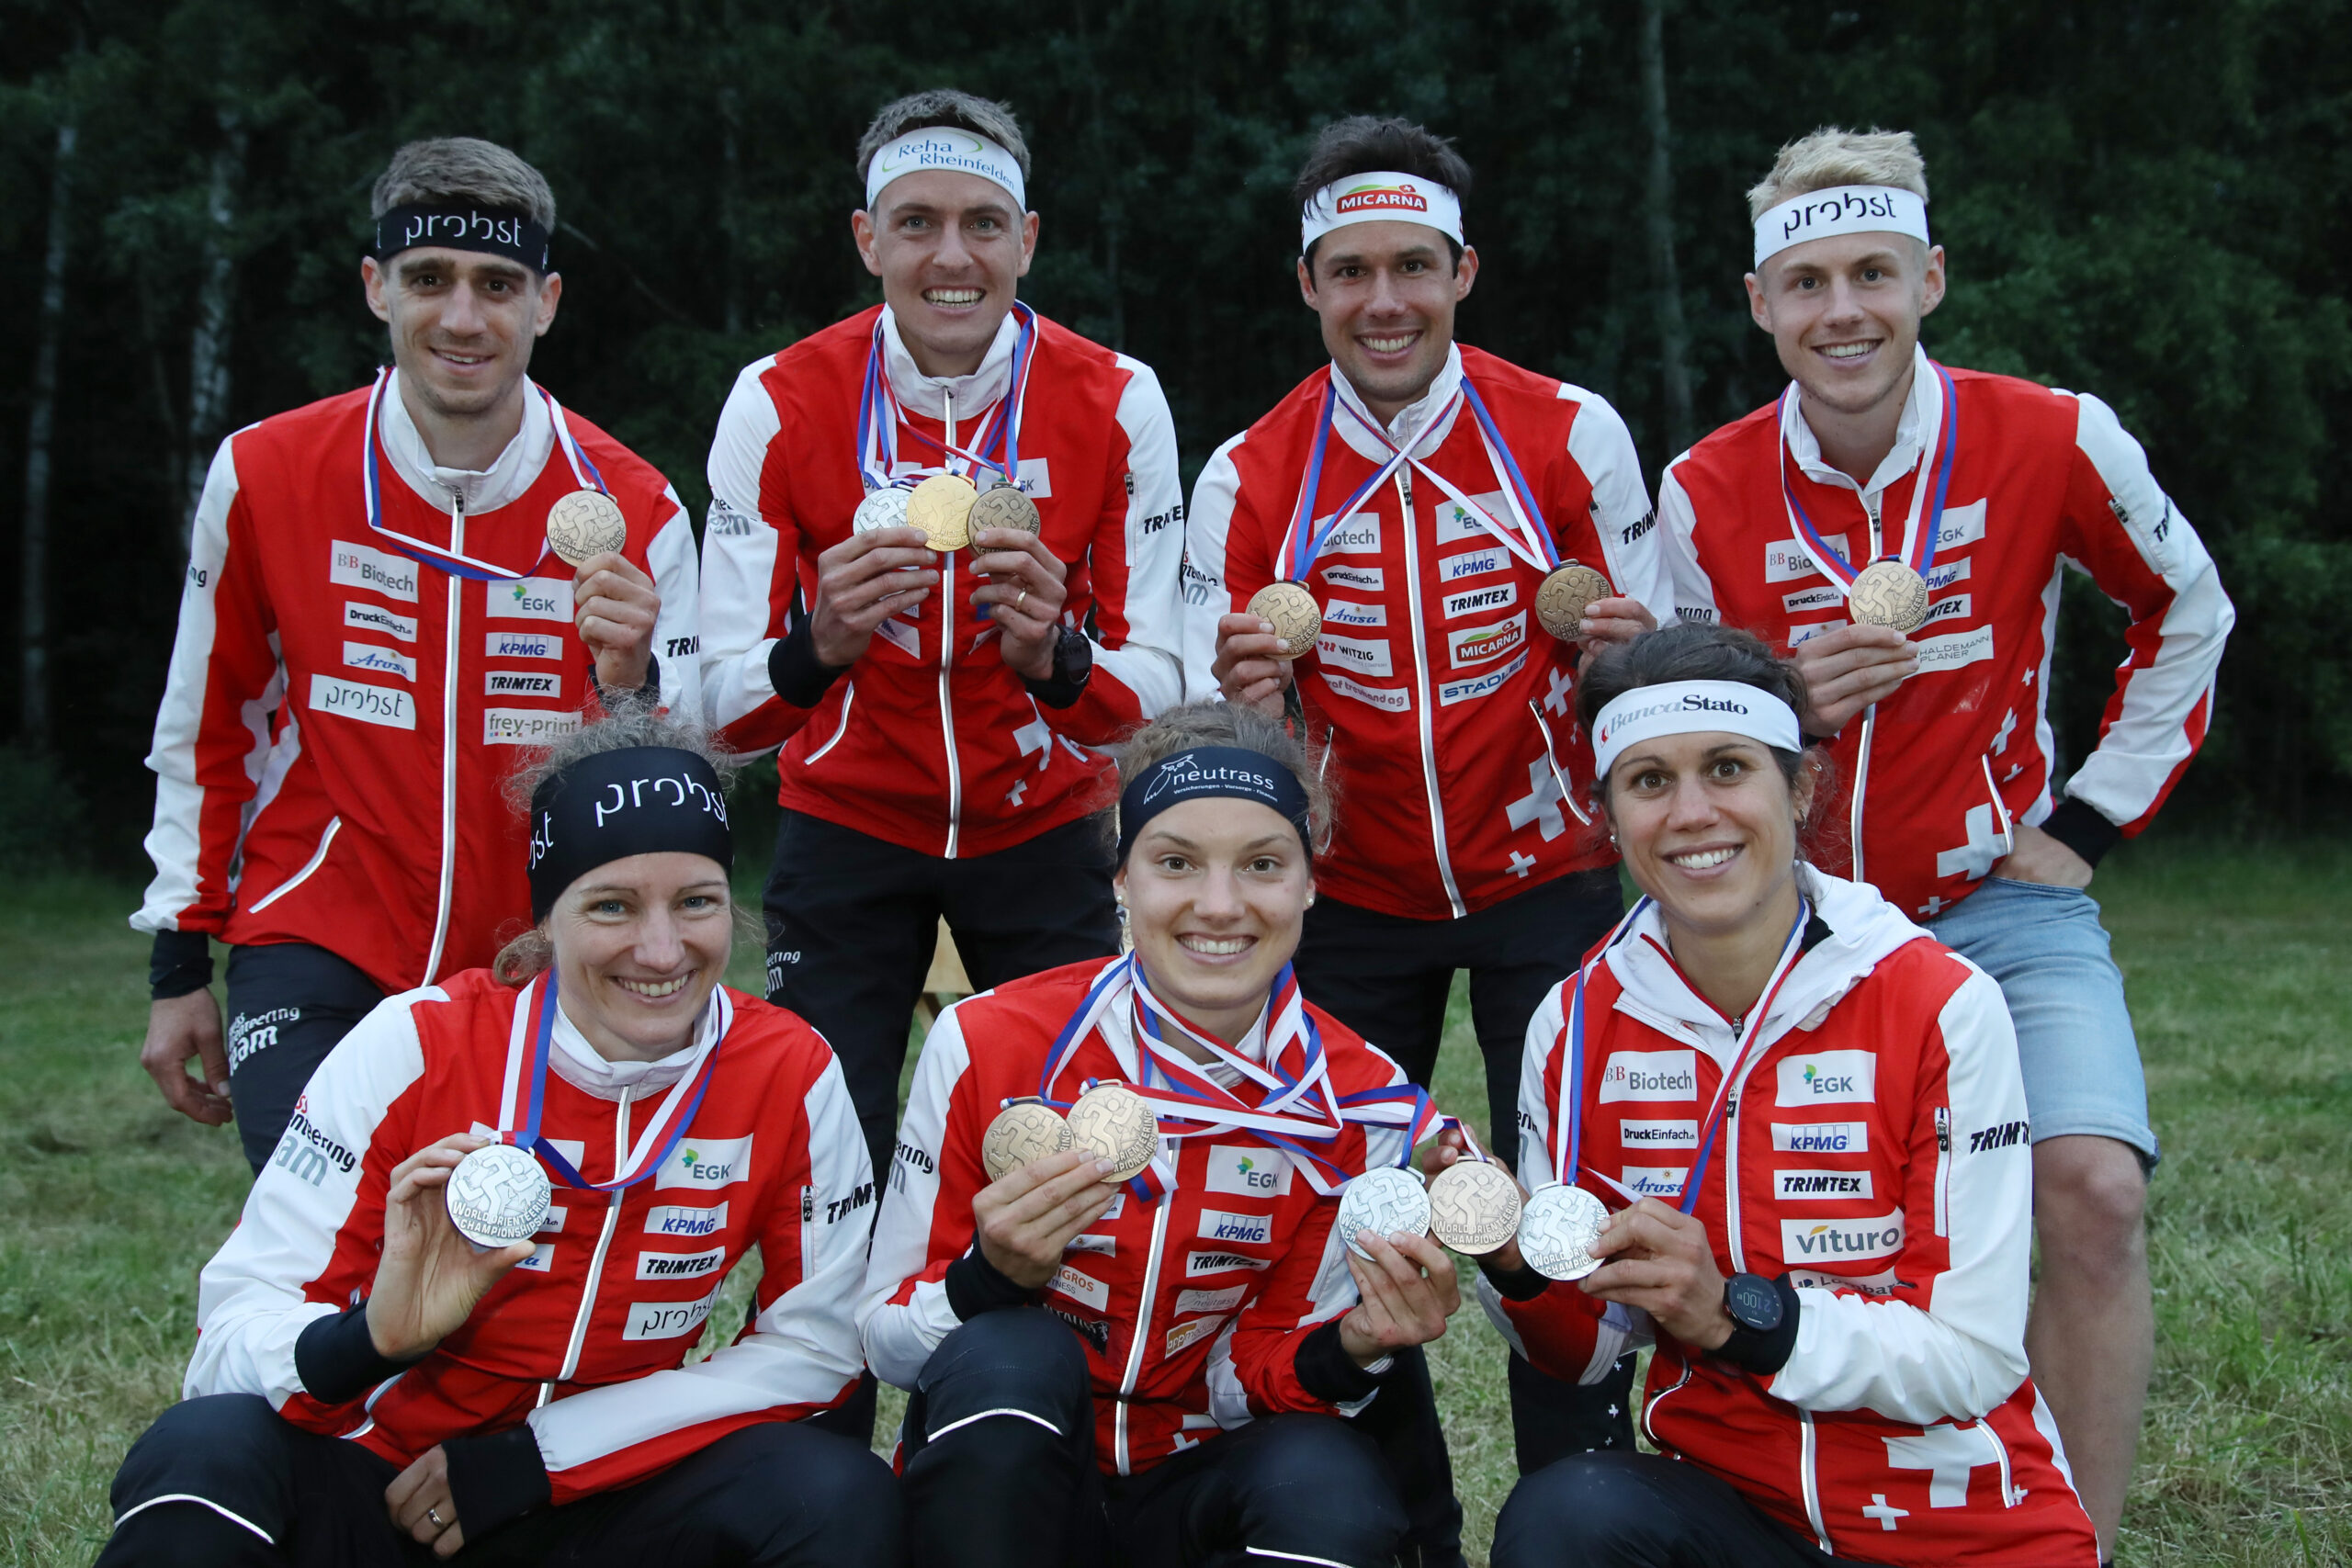 7 medals for the Swiss Orienteers at the World Championships 2021 in Czech Republic: Sabine Hauswirth, Simona Aebersold and Elena Roos (FLTR in front), Florian Howald, Matthias Kyburz, Martin Hubmann and Joey Hadorn (FLTR in the back)